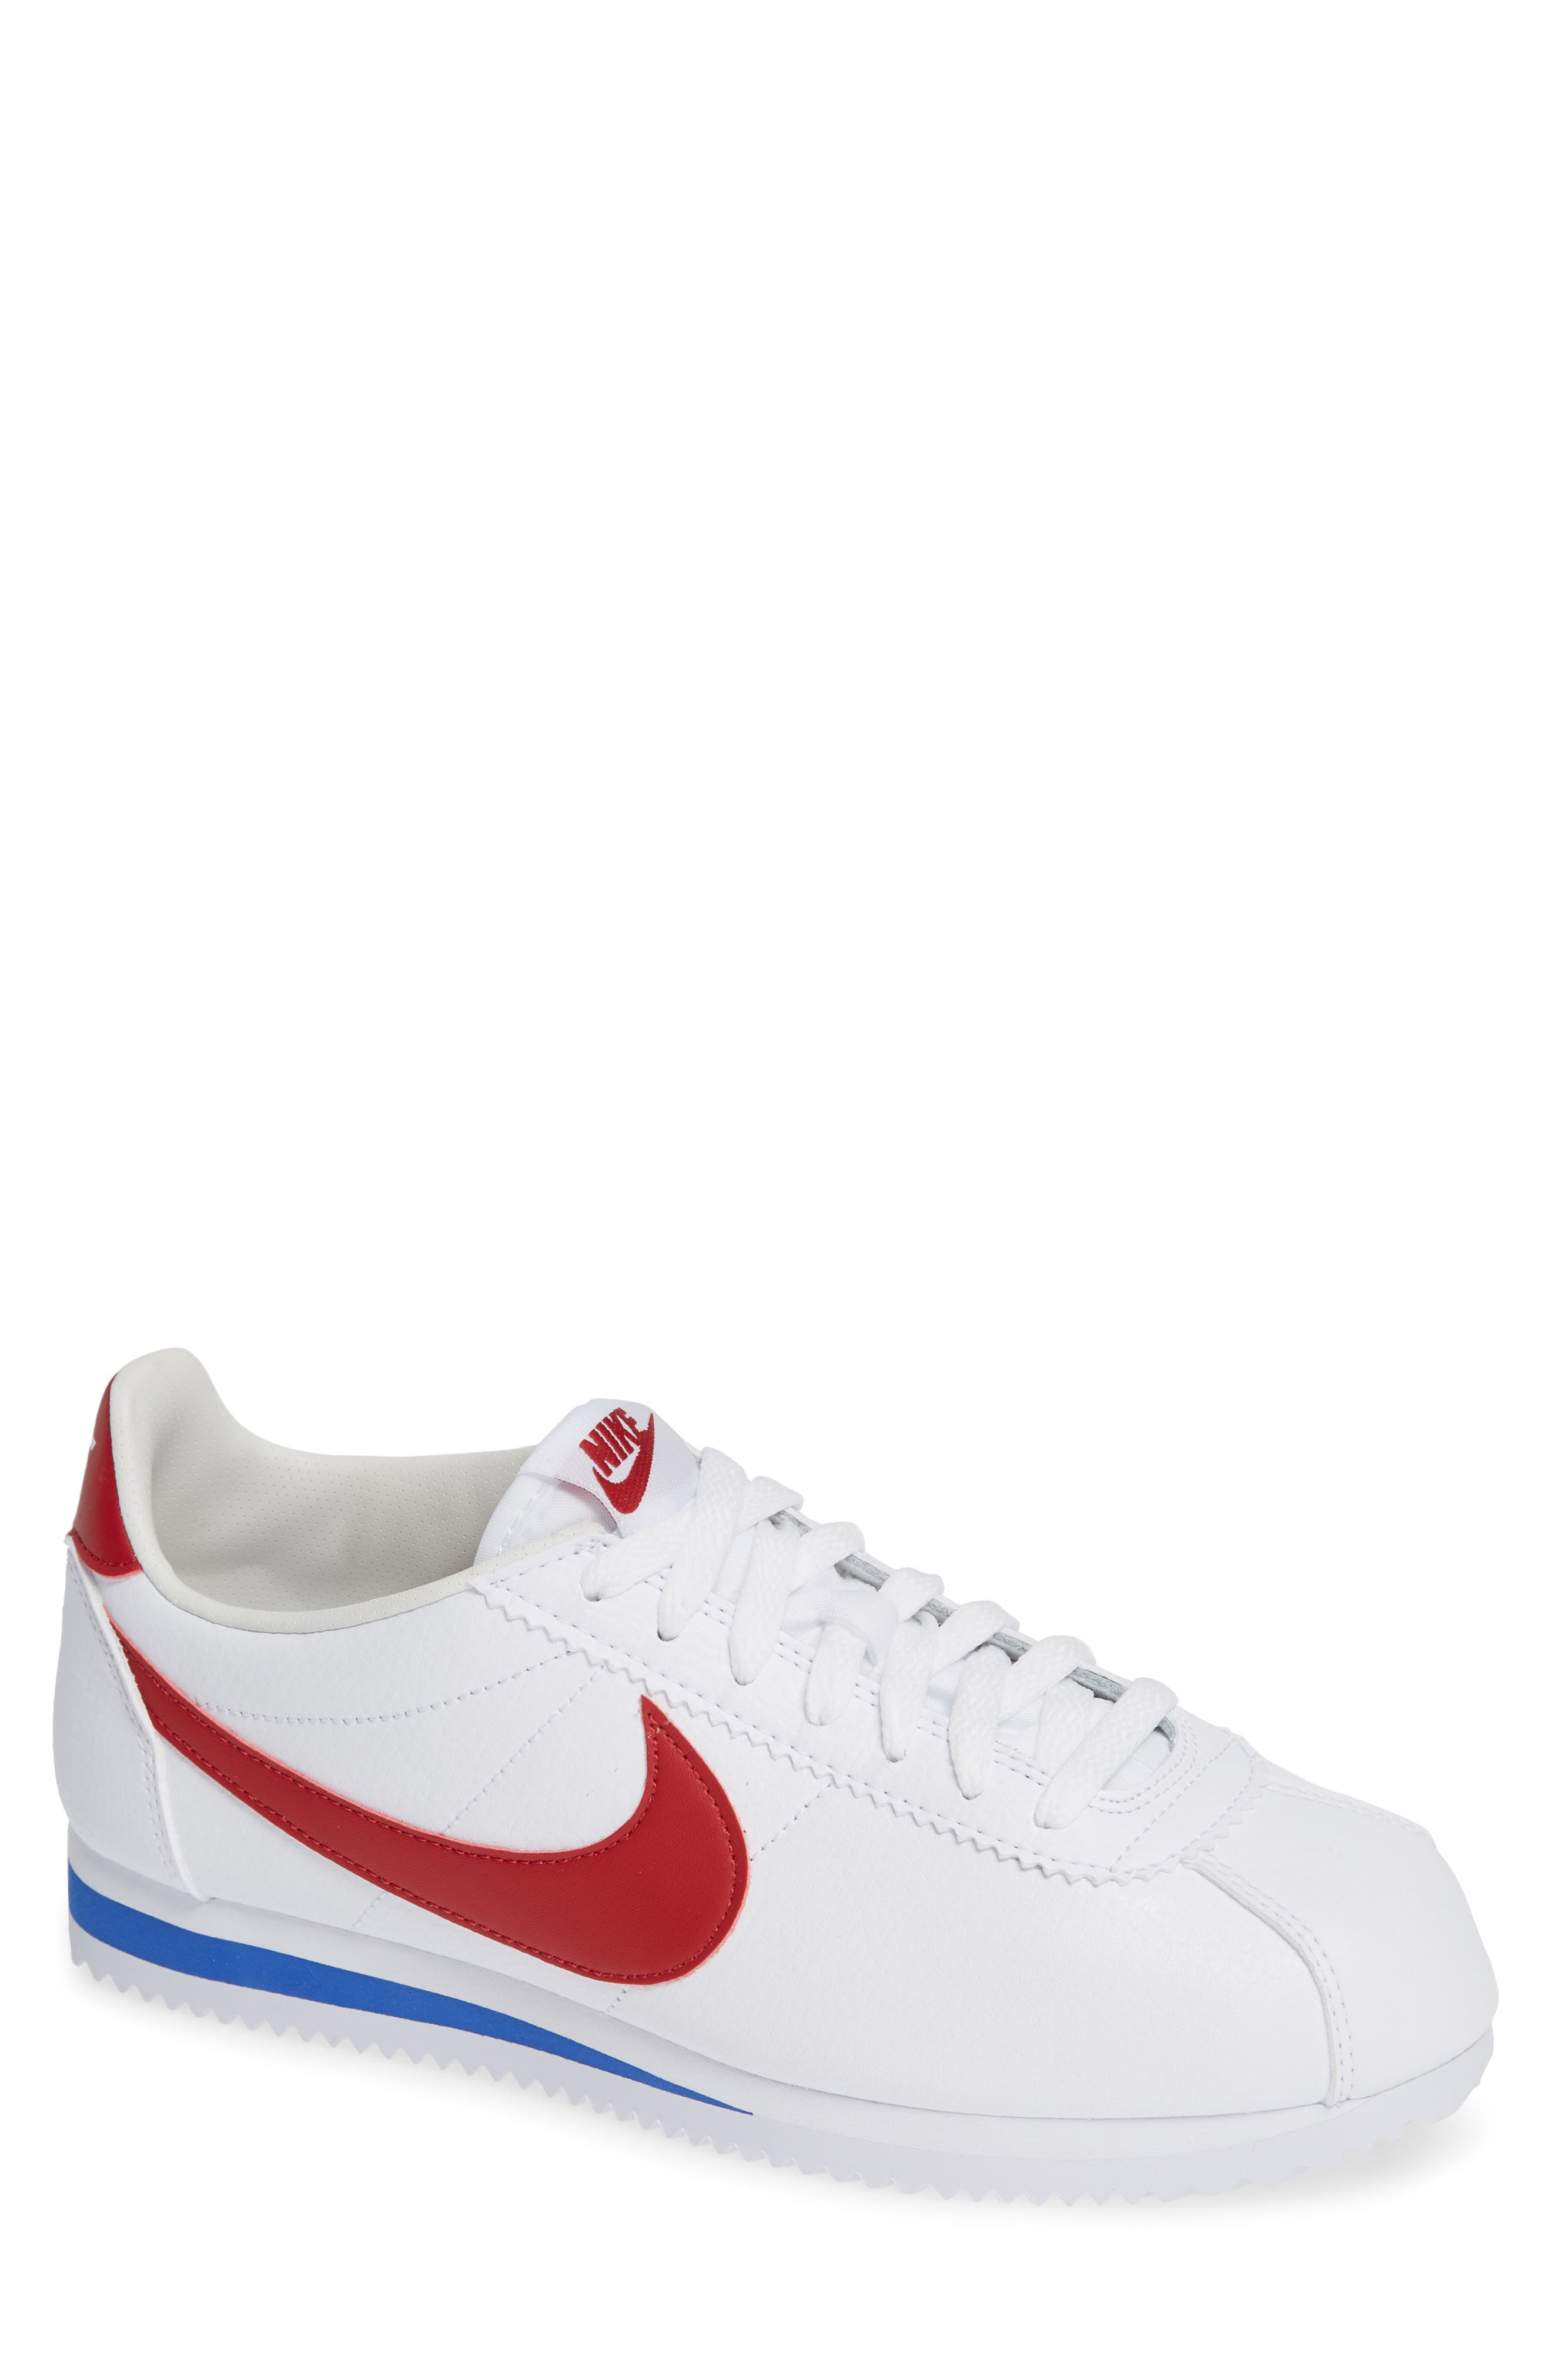 Classic Cortez Sneaker,                         Main,                         color, White/ Varsity Red/ Royal